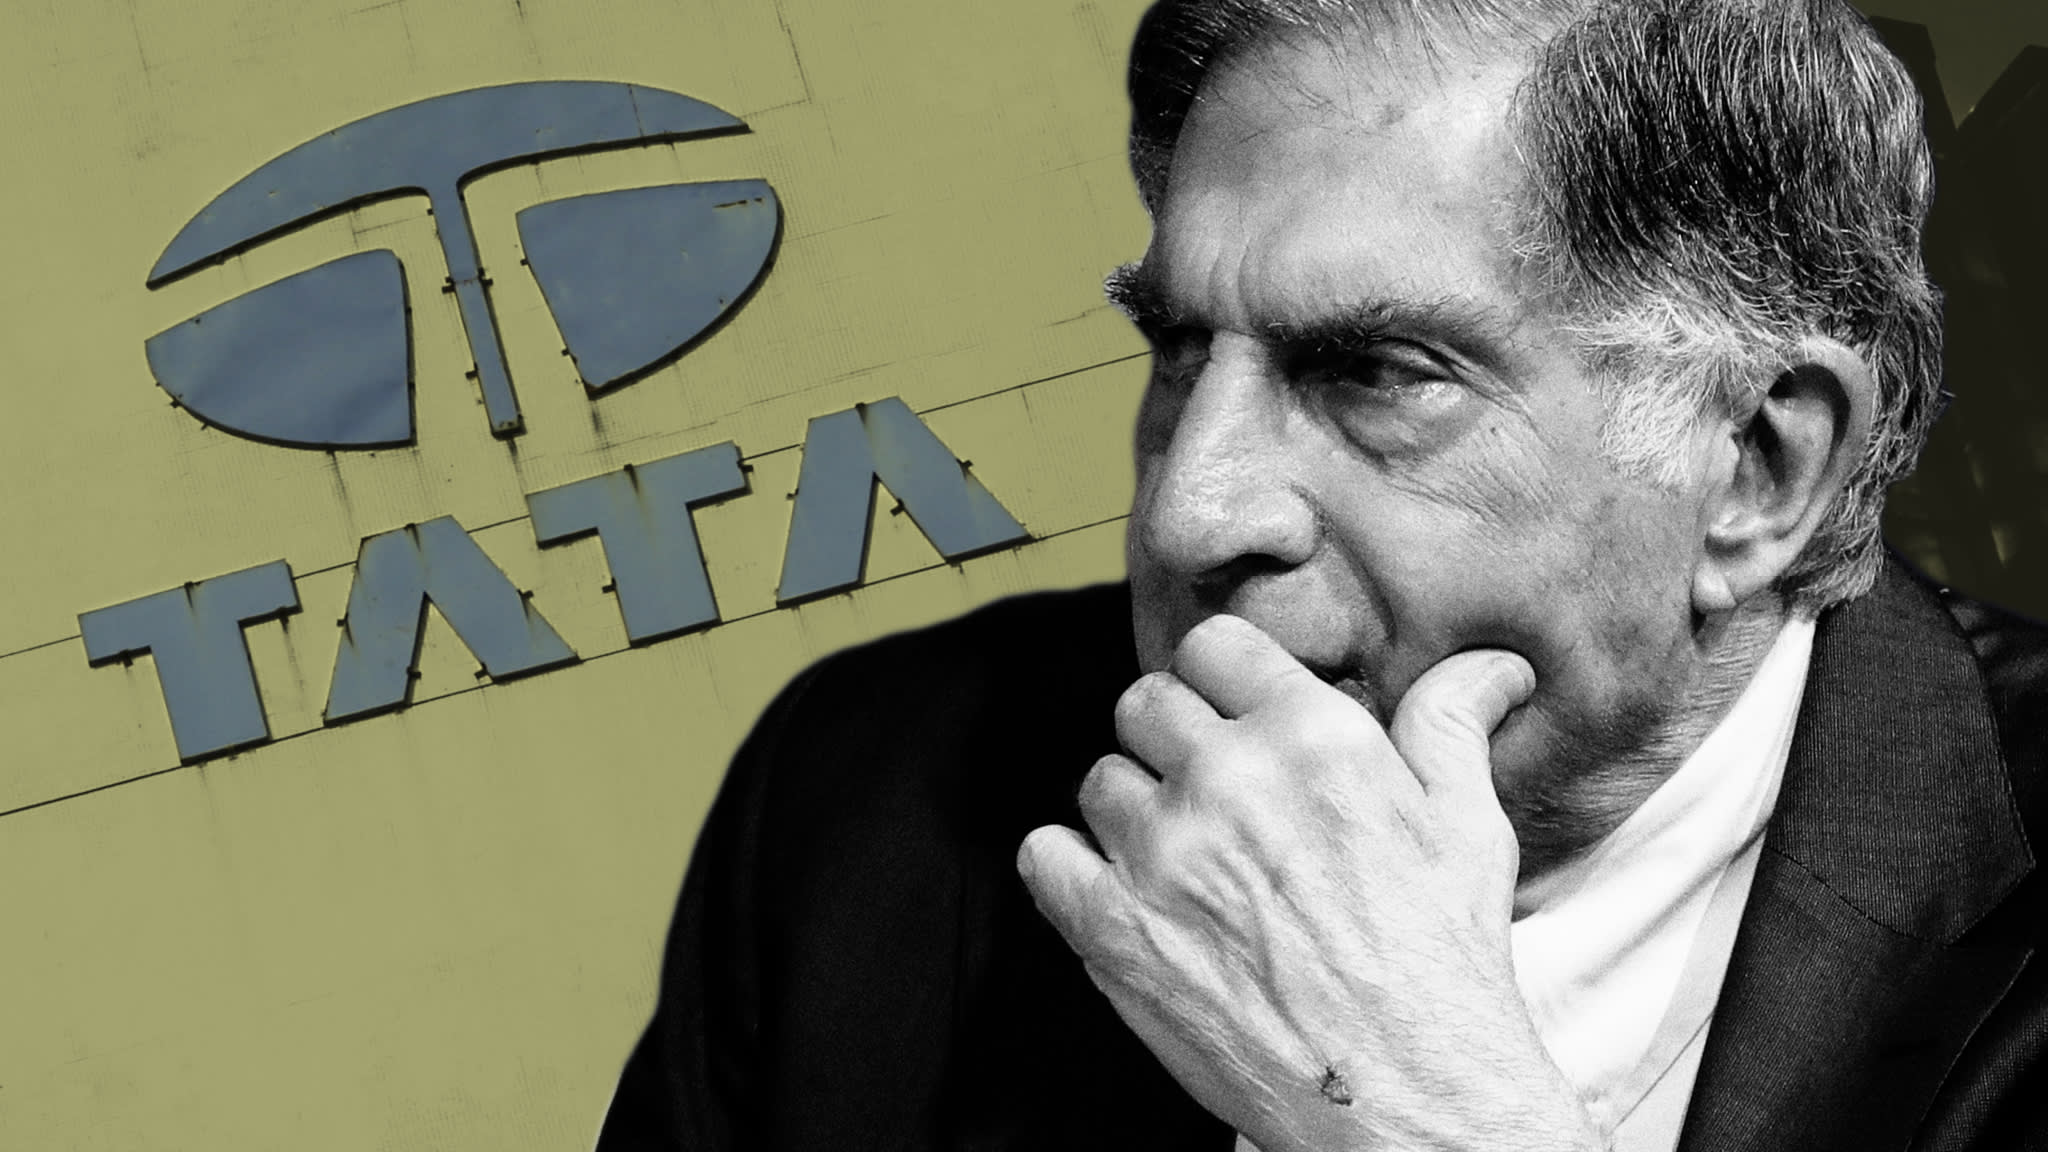 Tata ready to push forward after tumultuous 18-month legal battle